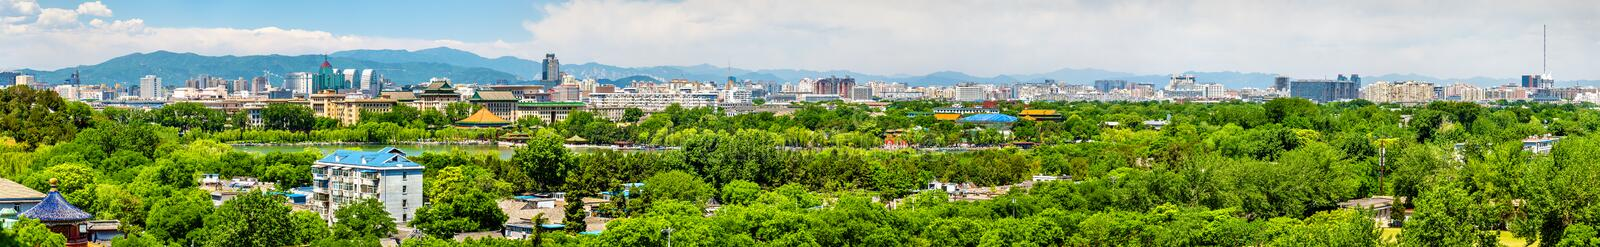 City view of Beijing from Jingshan park. China royalty free stock photography